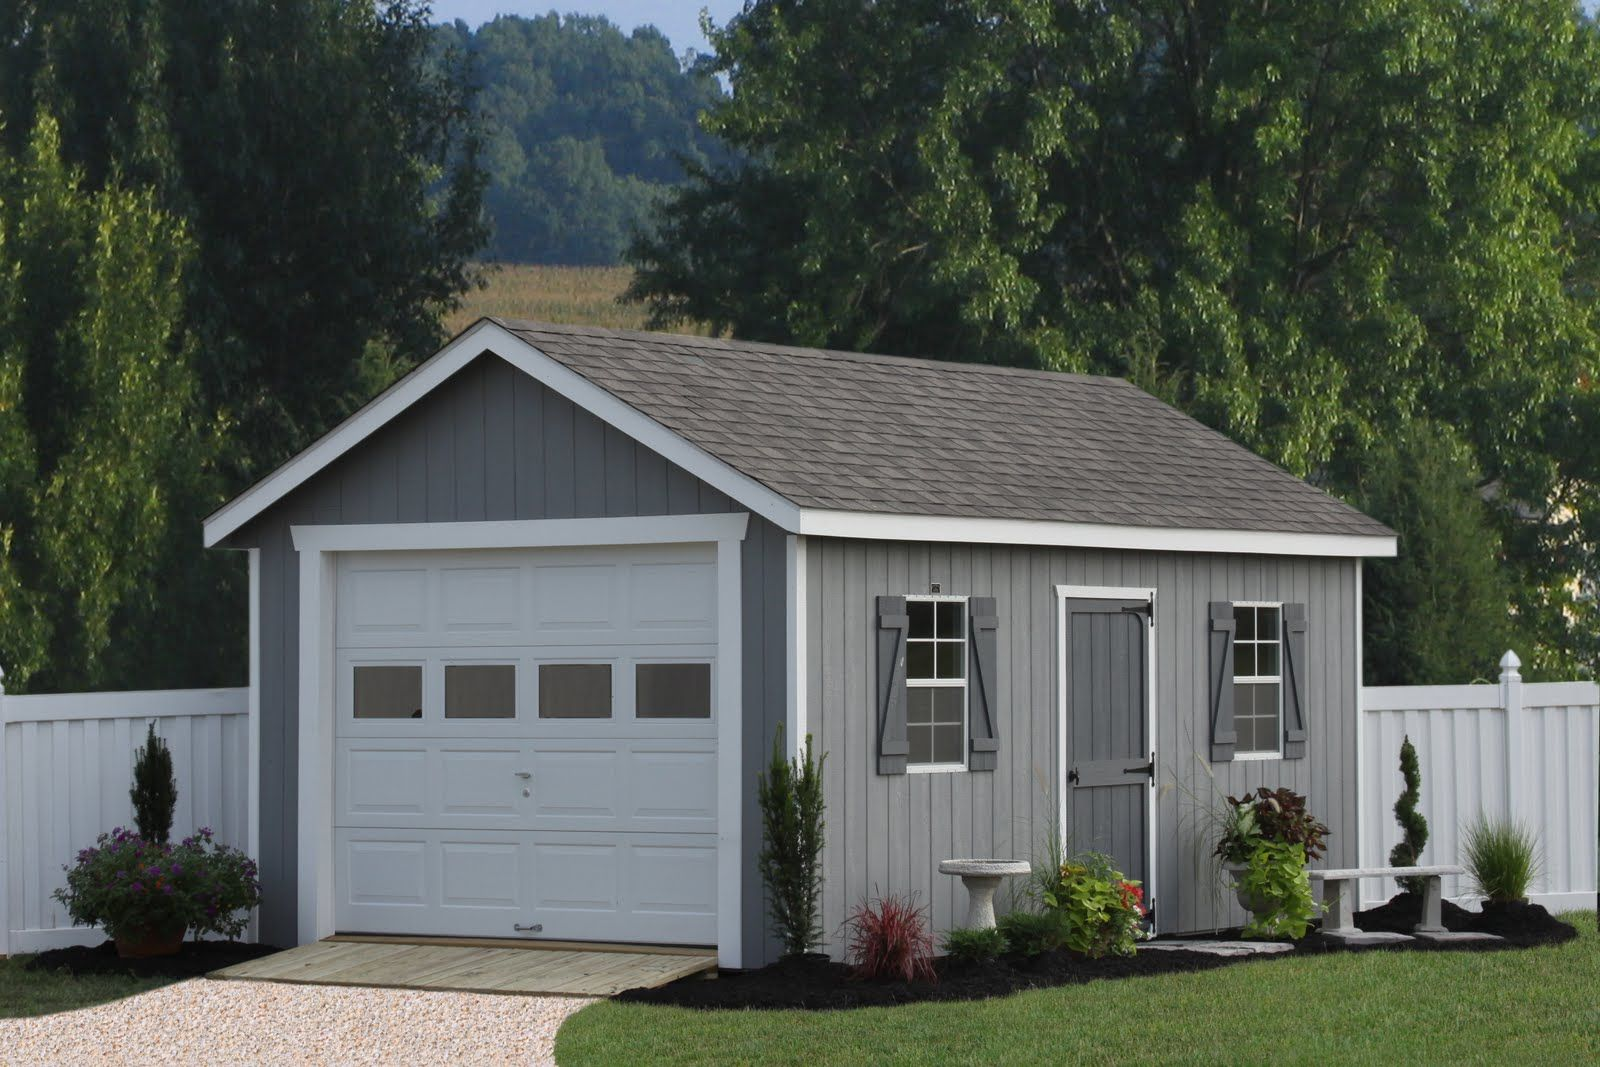 Add on garage plans 12x20 classic one car garage for Single car detached garage plans